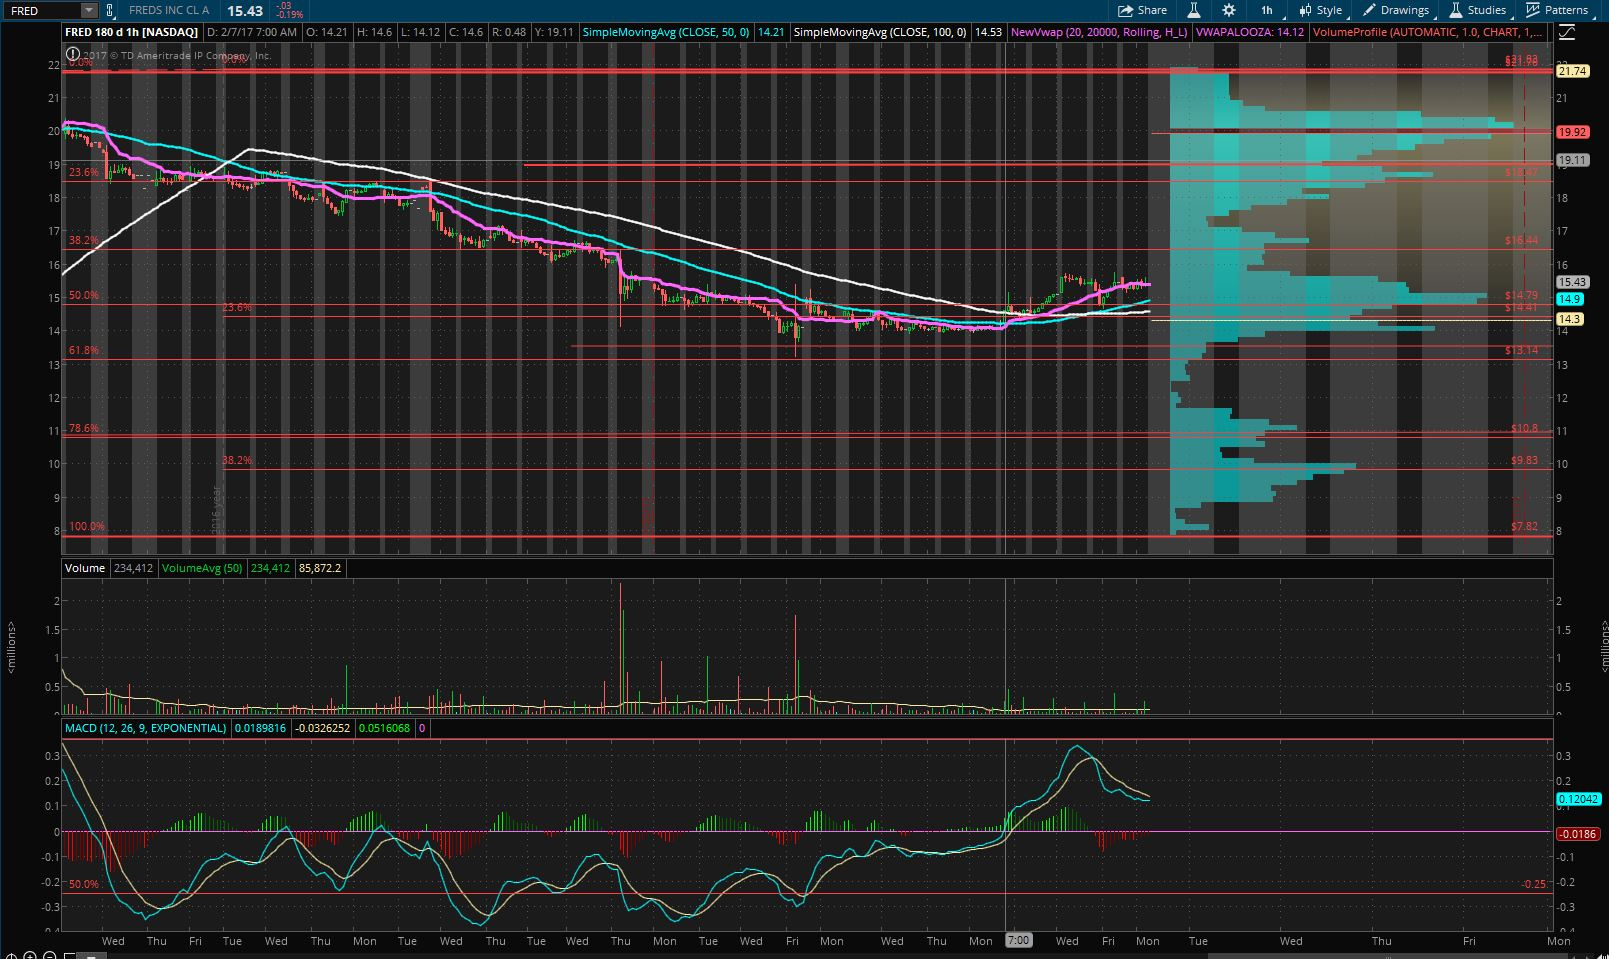 My 2nd stock on my list is $TEVA  The grey line is the support line that has been in play for quite some time in this stock at least back to 2002 and it's near it's 52 week low with the MACD working it's way back... With the last 4 times reporting earnings beatting estimates and a Div yield 4.00% is not a bad stock to watch...